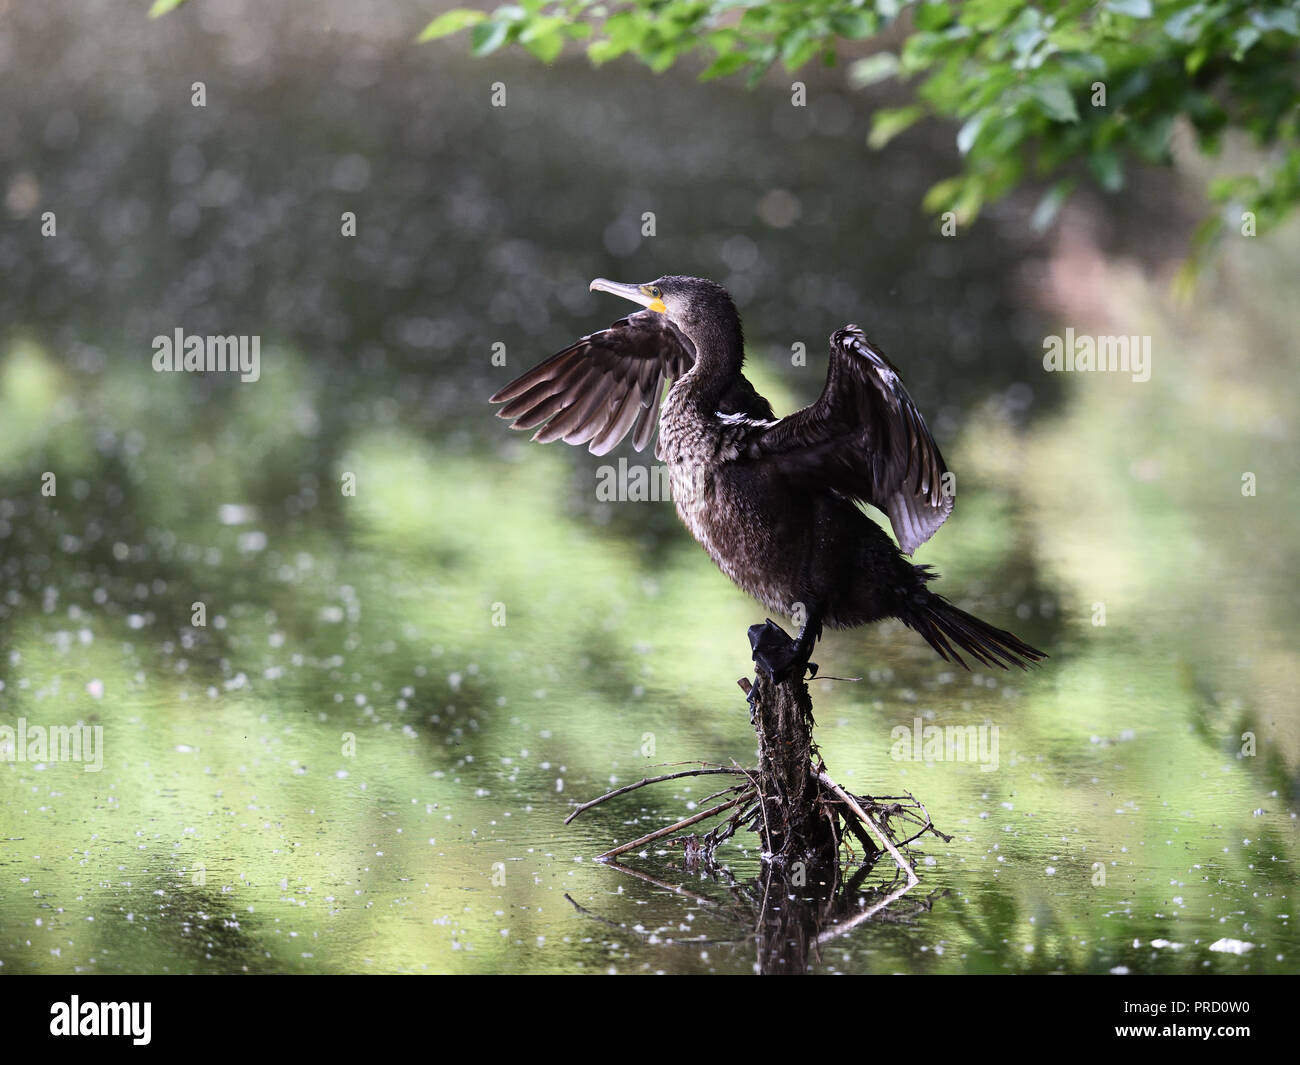 Ein Kormoran trocknet seine Fluegel (a cormorant is drying her wings) - Stock Image